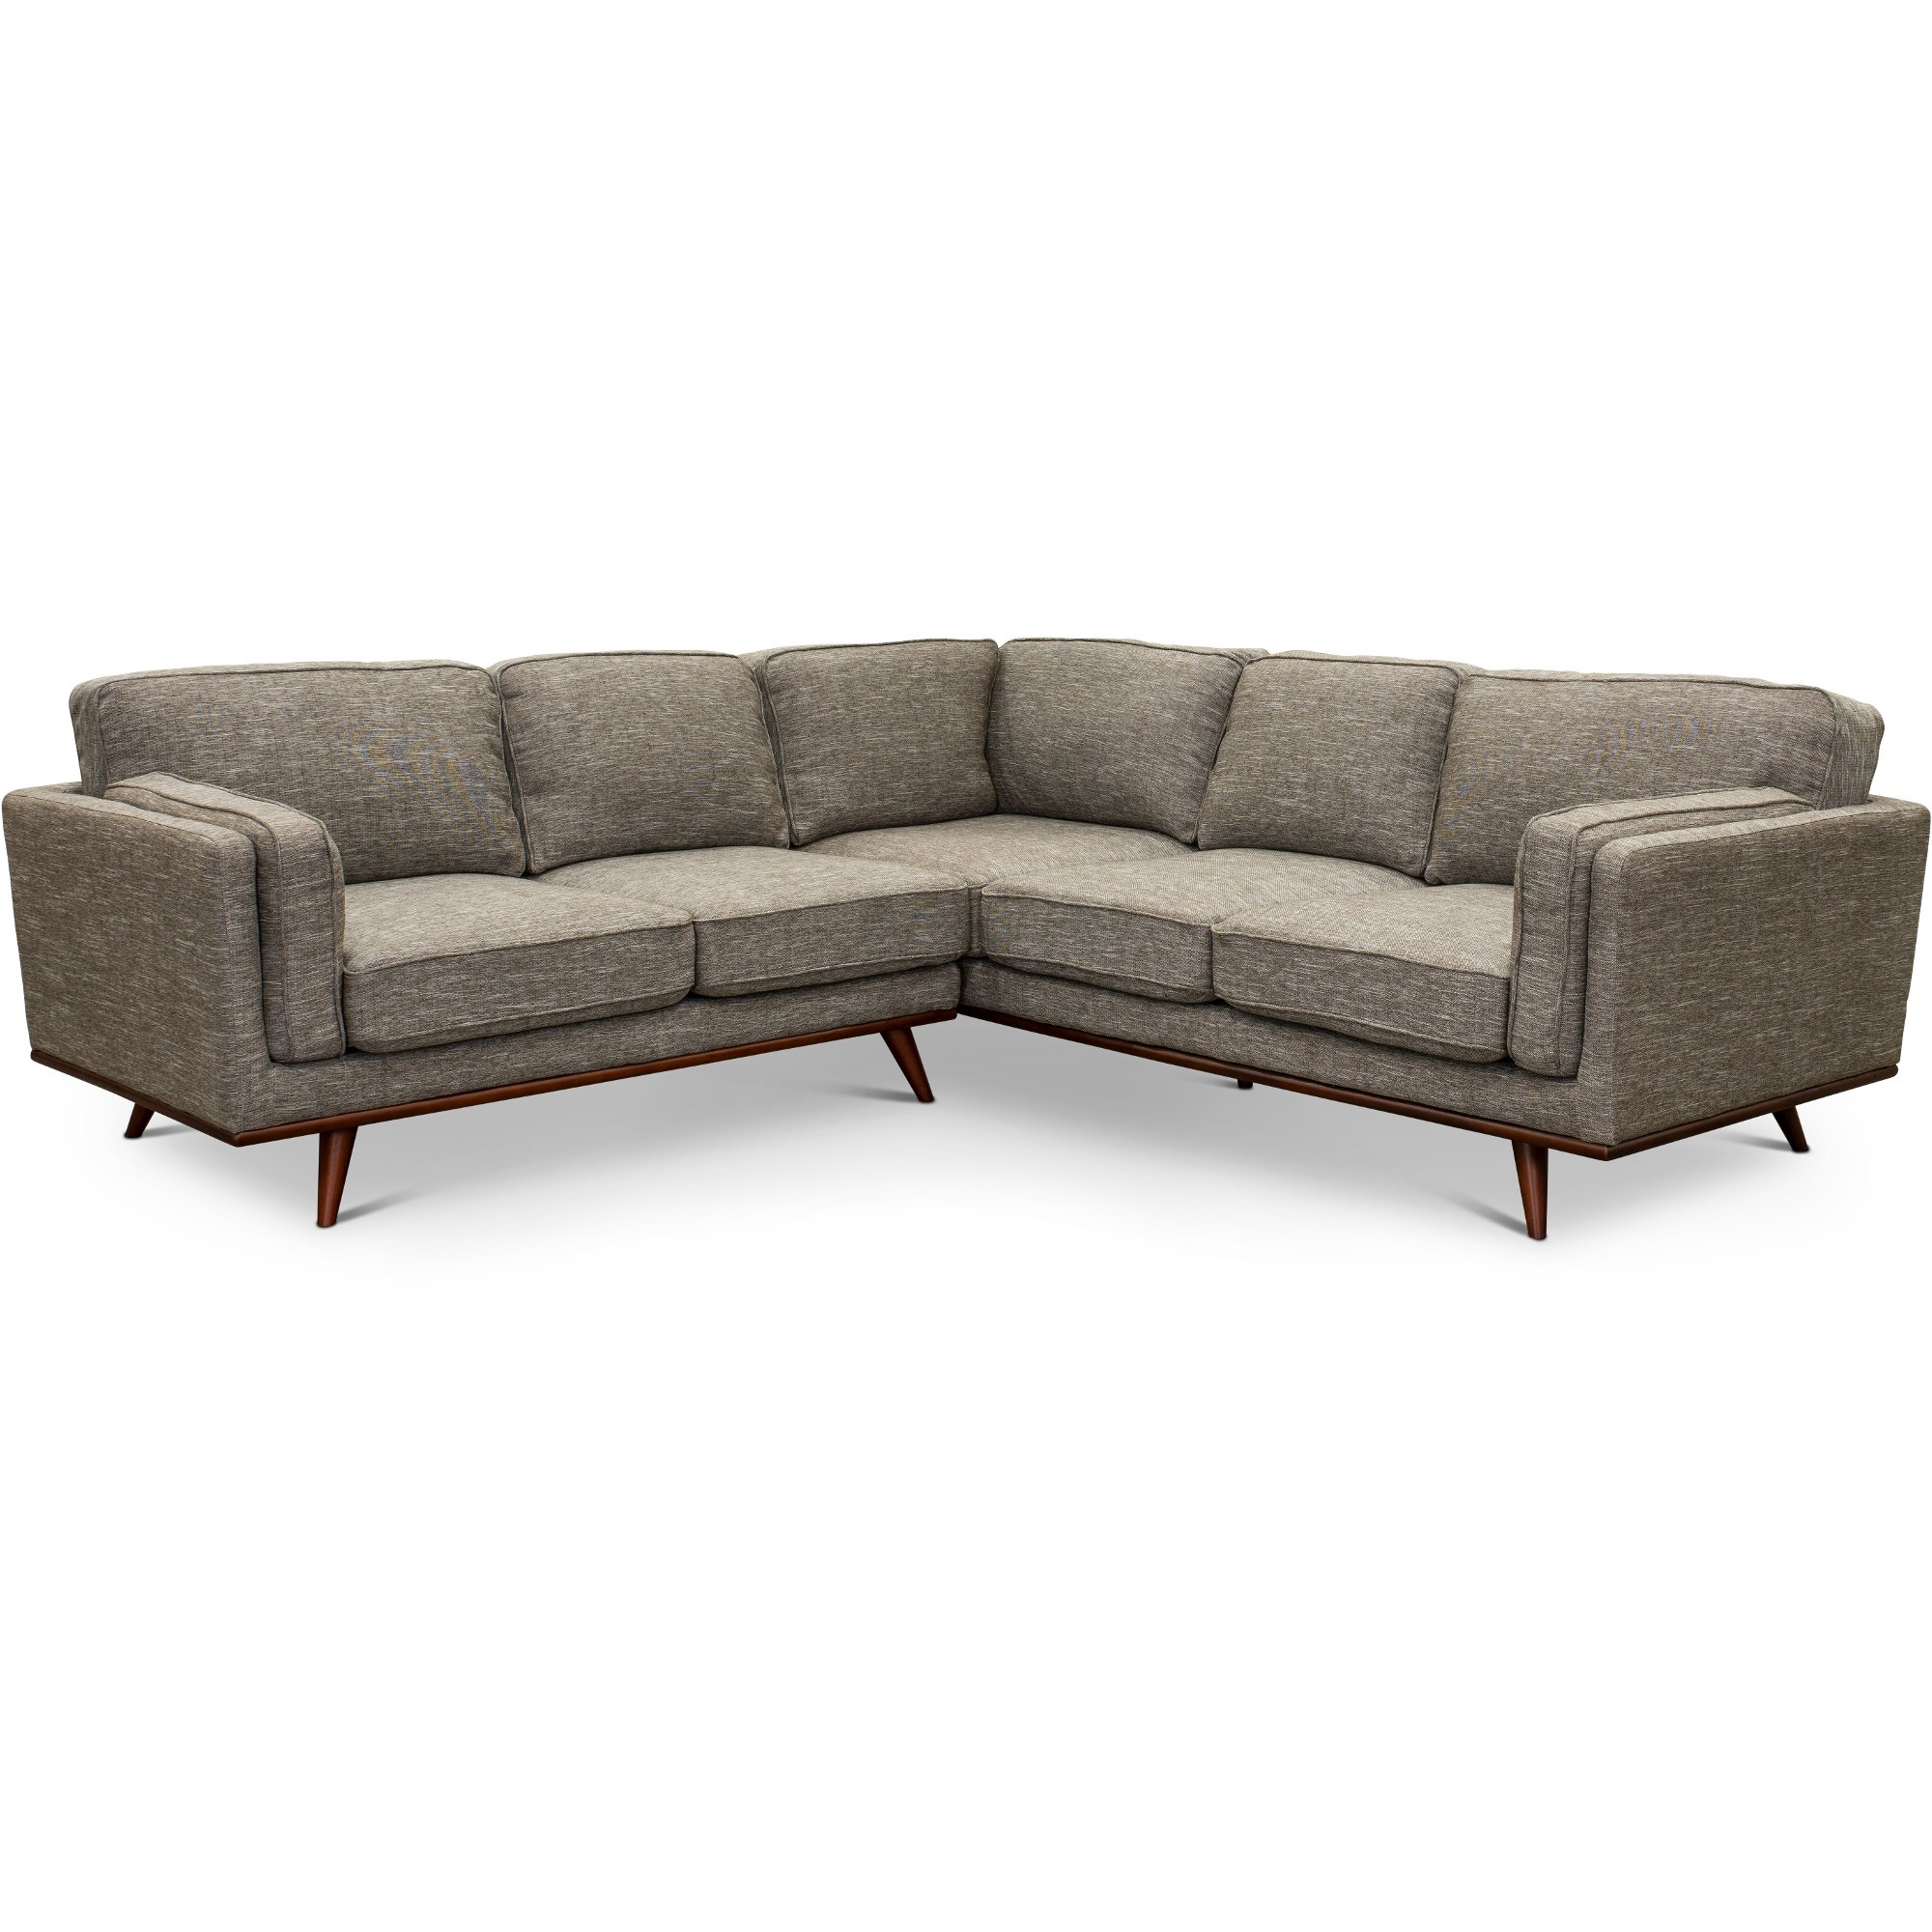 Gray 2 Piece Sectional Sofa with LAF Loveseat - Camden | RC Willey ...